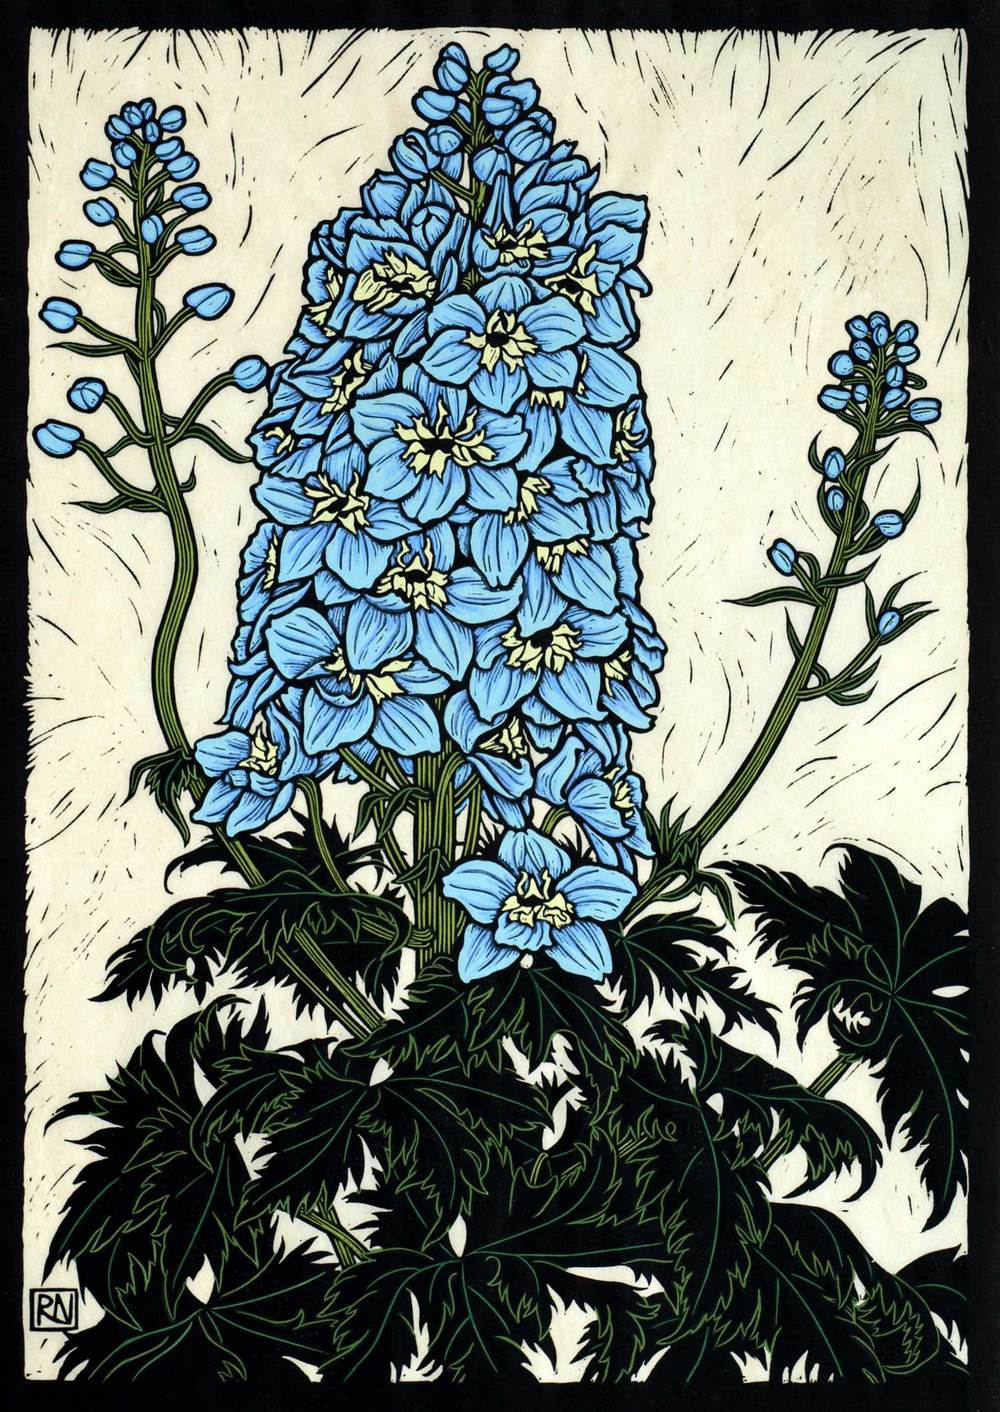 DELPHINIUM  49 X 35 CM    EDITION OF 50  HAND COLOURED LINOCUT ON HANDMADE JAPANESE PAPER  $1,050